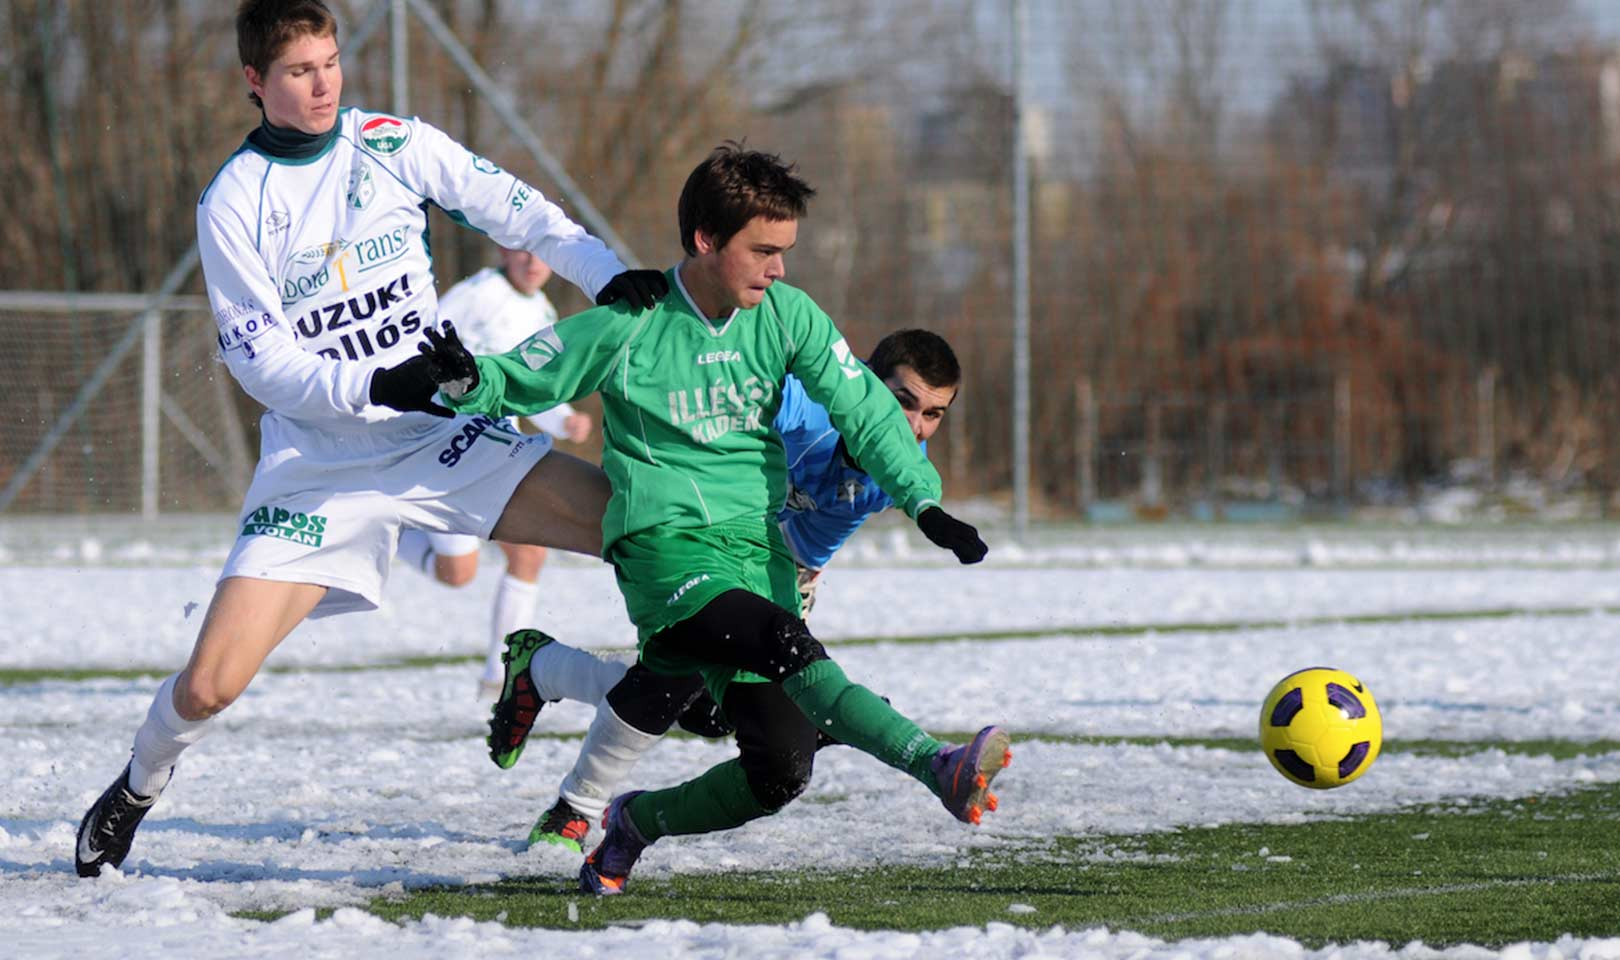 Kids playing football in the snow.